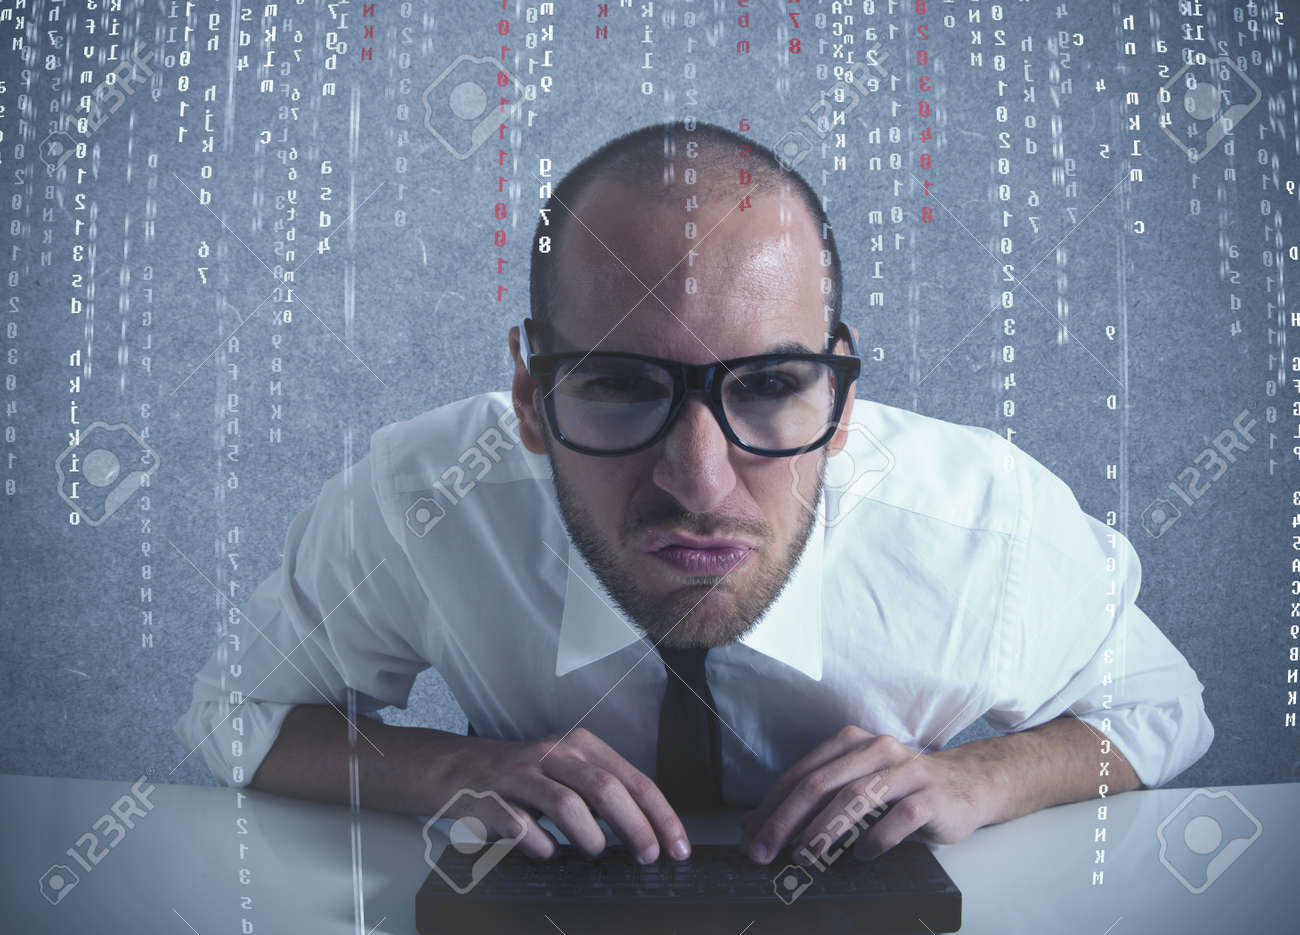 Concept of computer and software programmer Stock Photo - 16828176